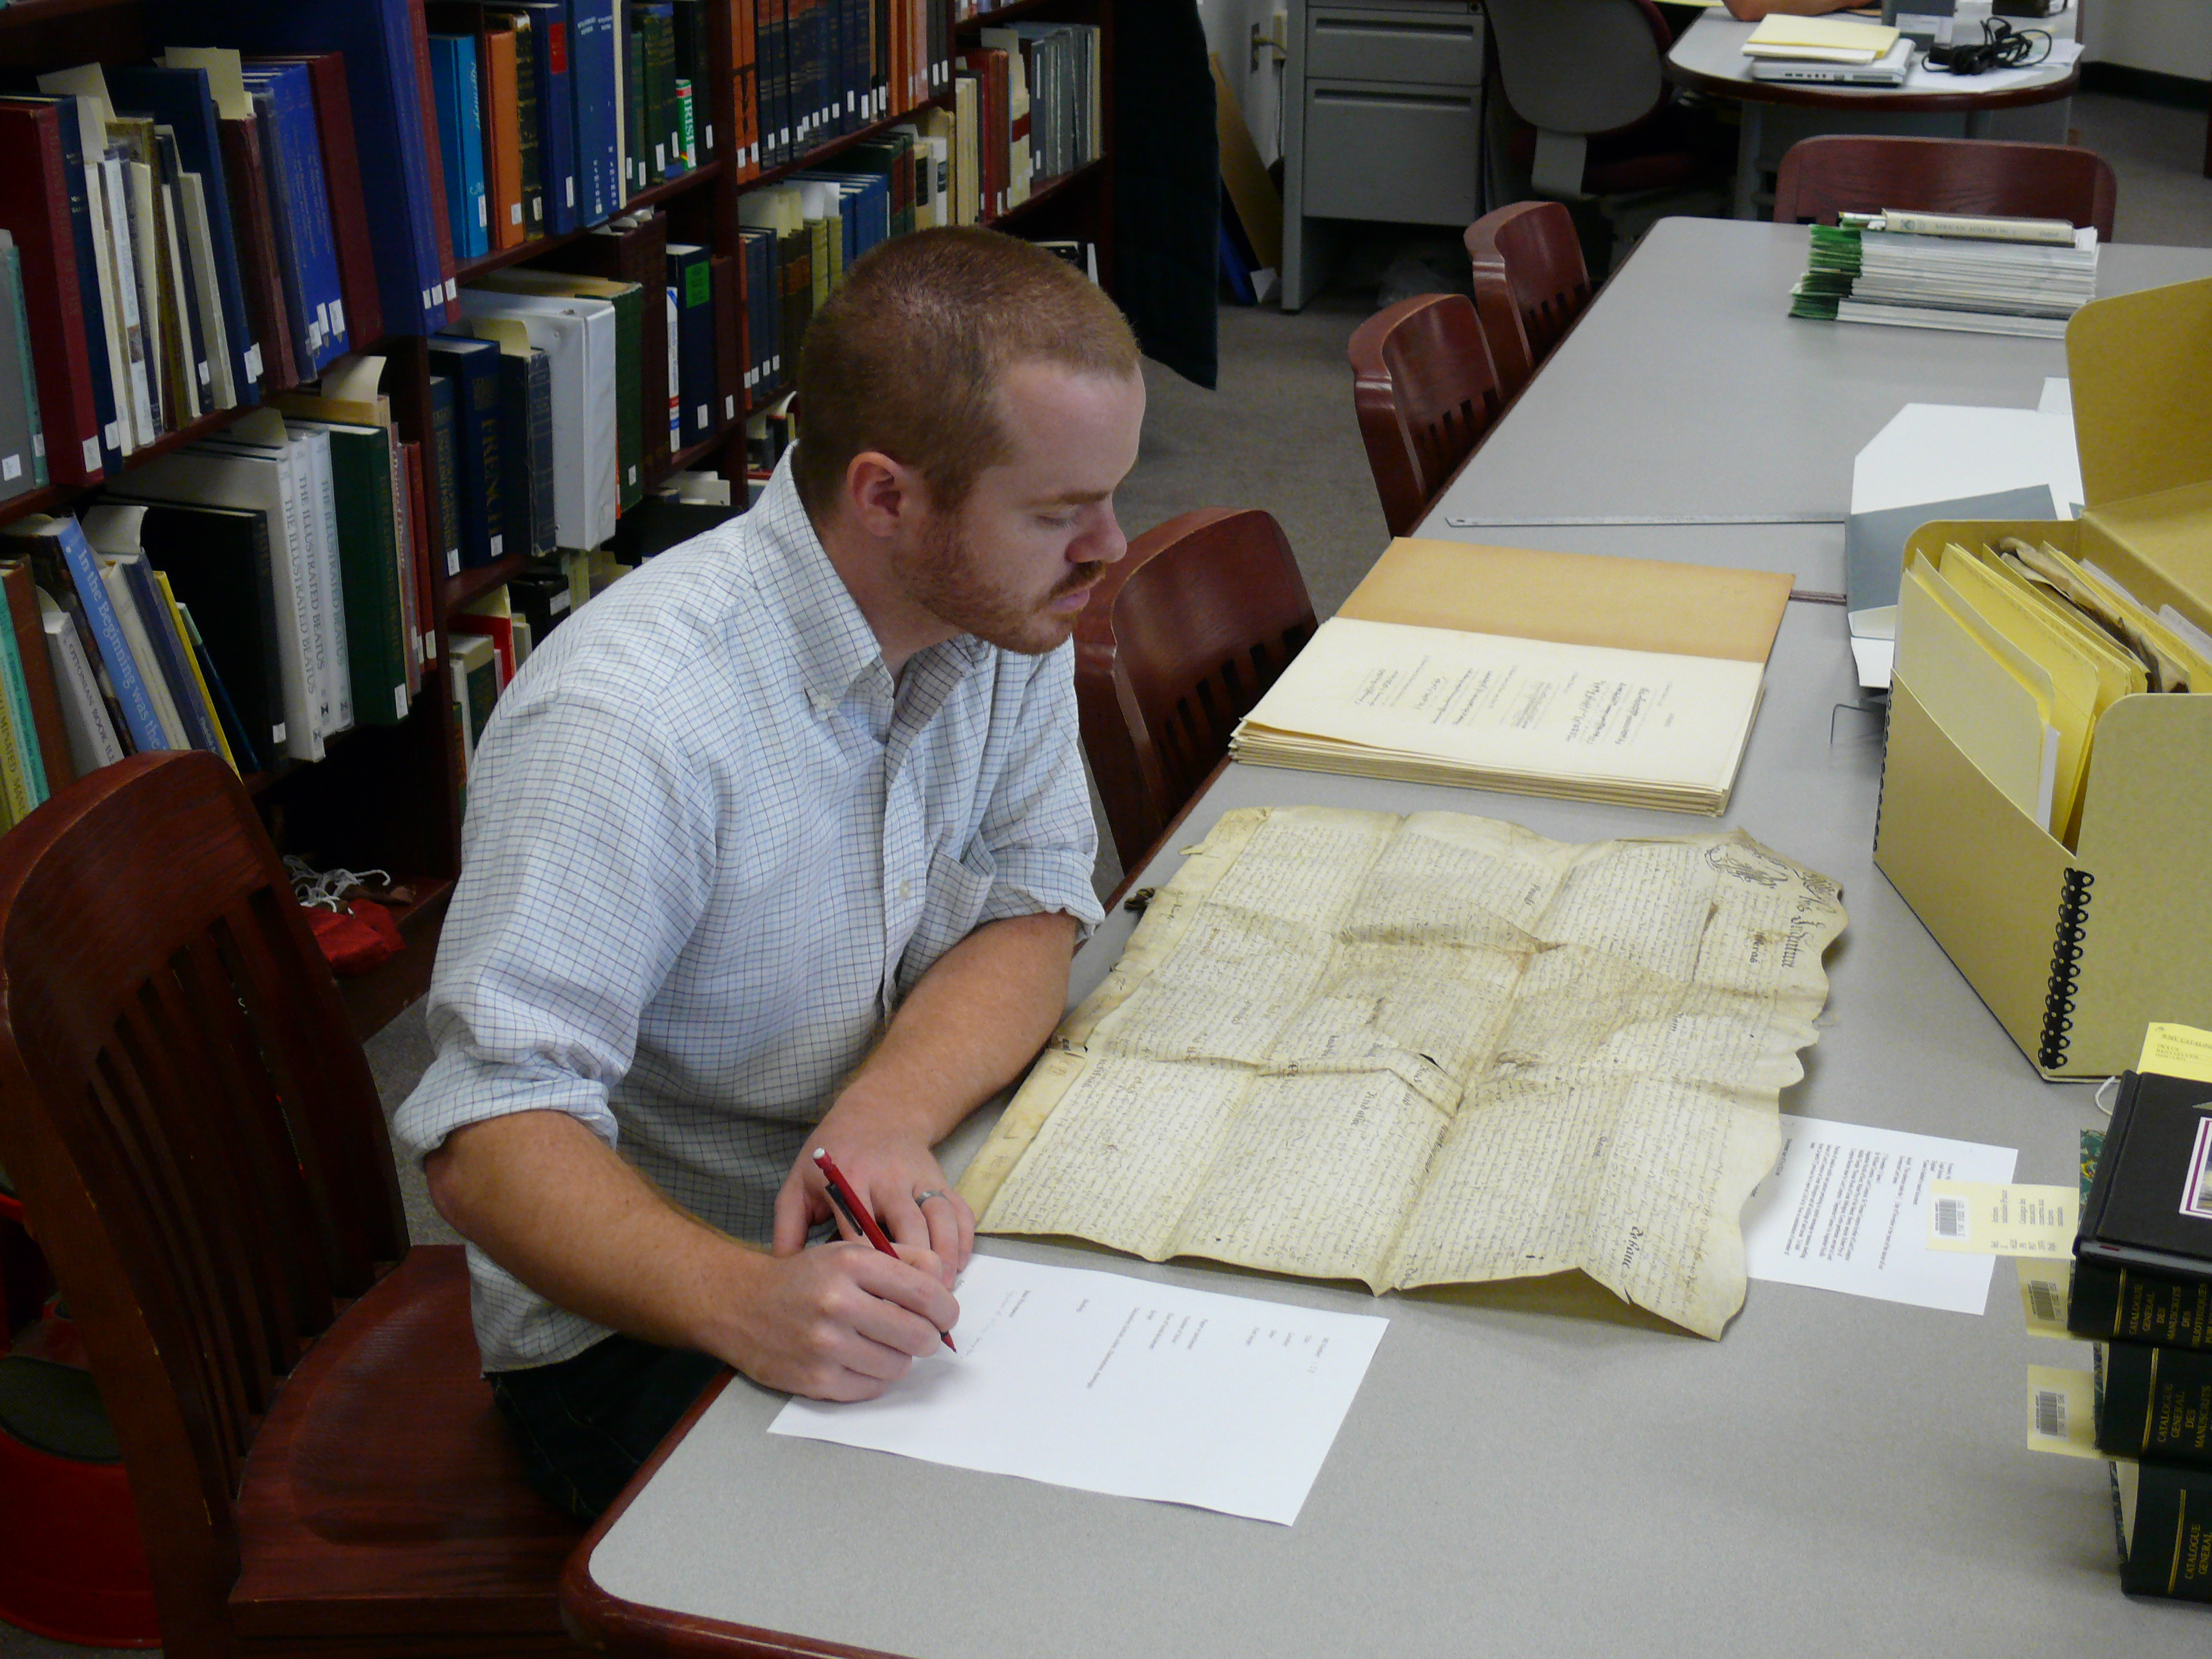 Researcher taking notes on a manuscript